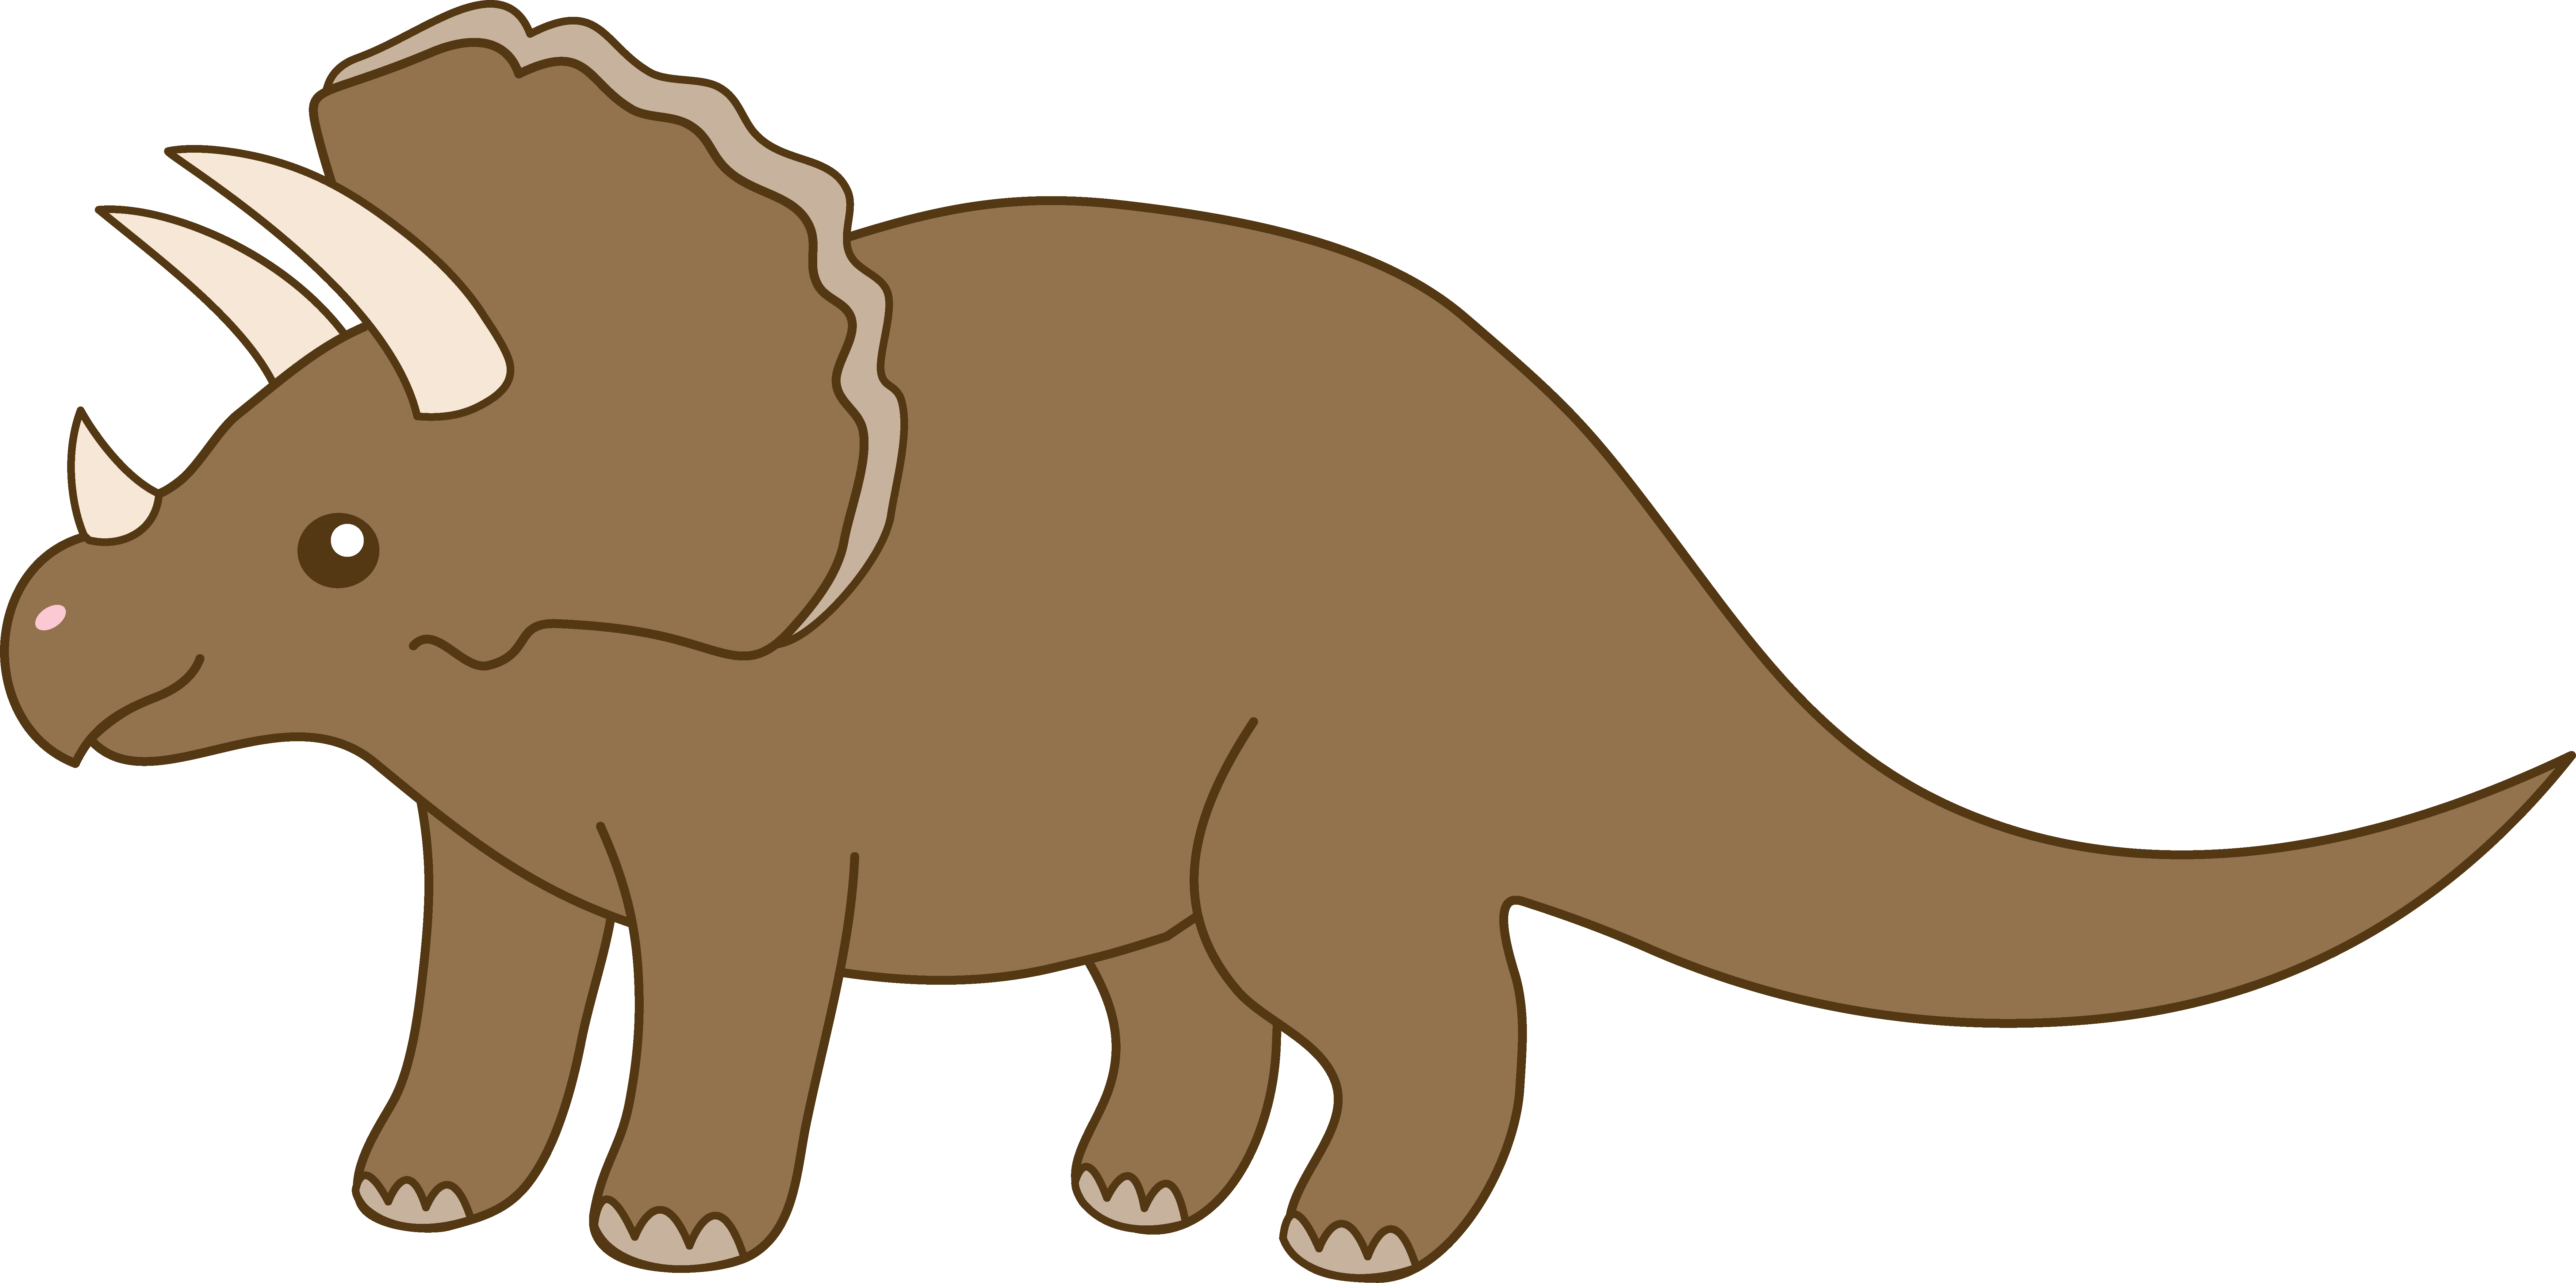 Dinosaur clipart #2, Download drawings